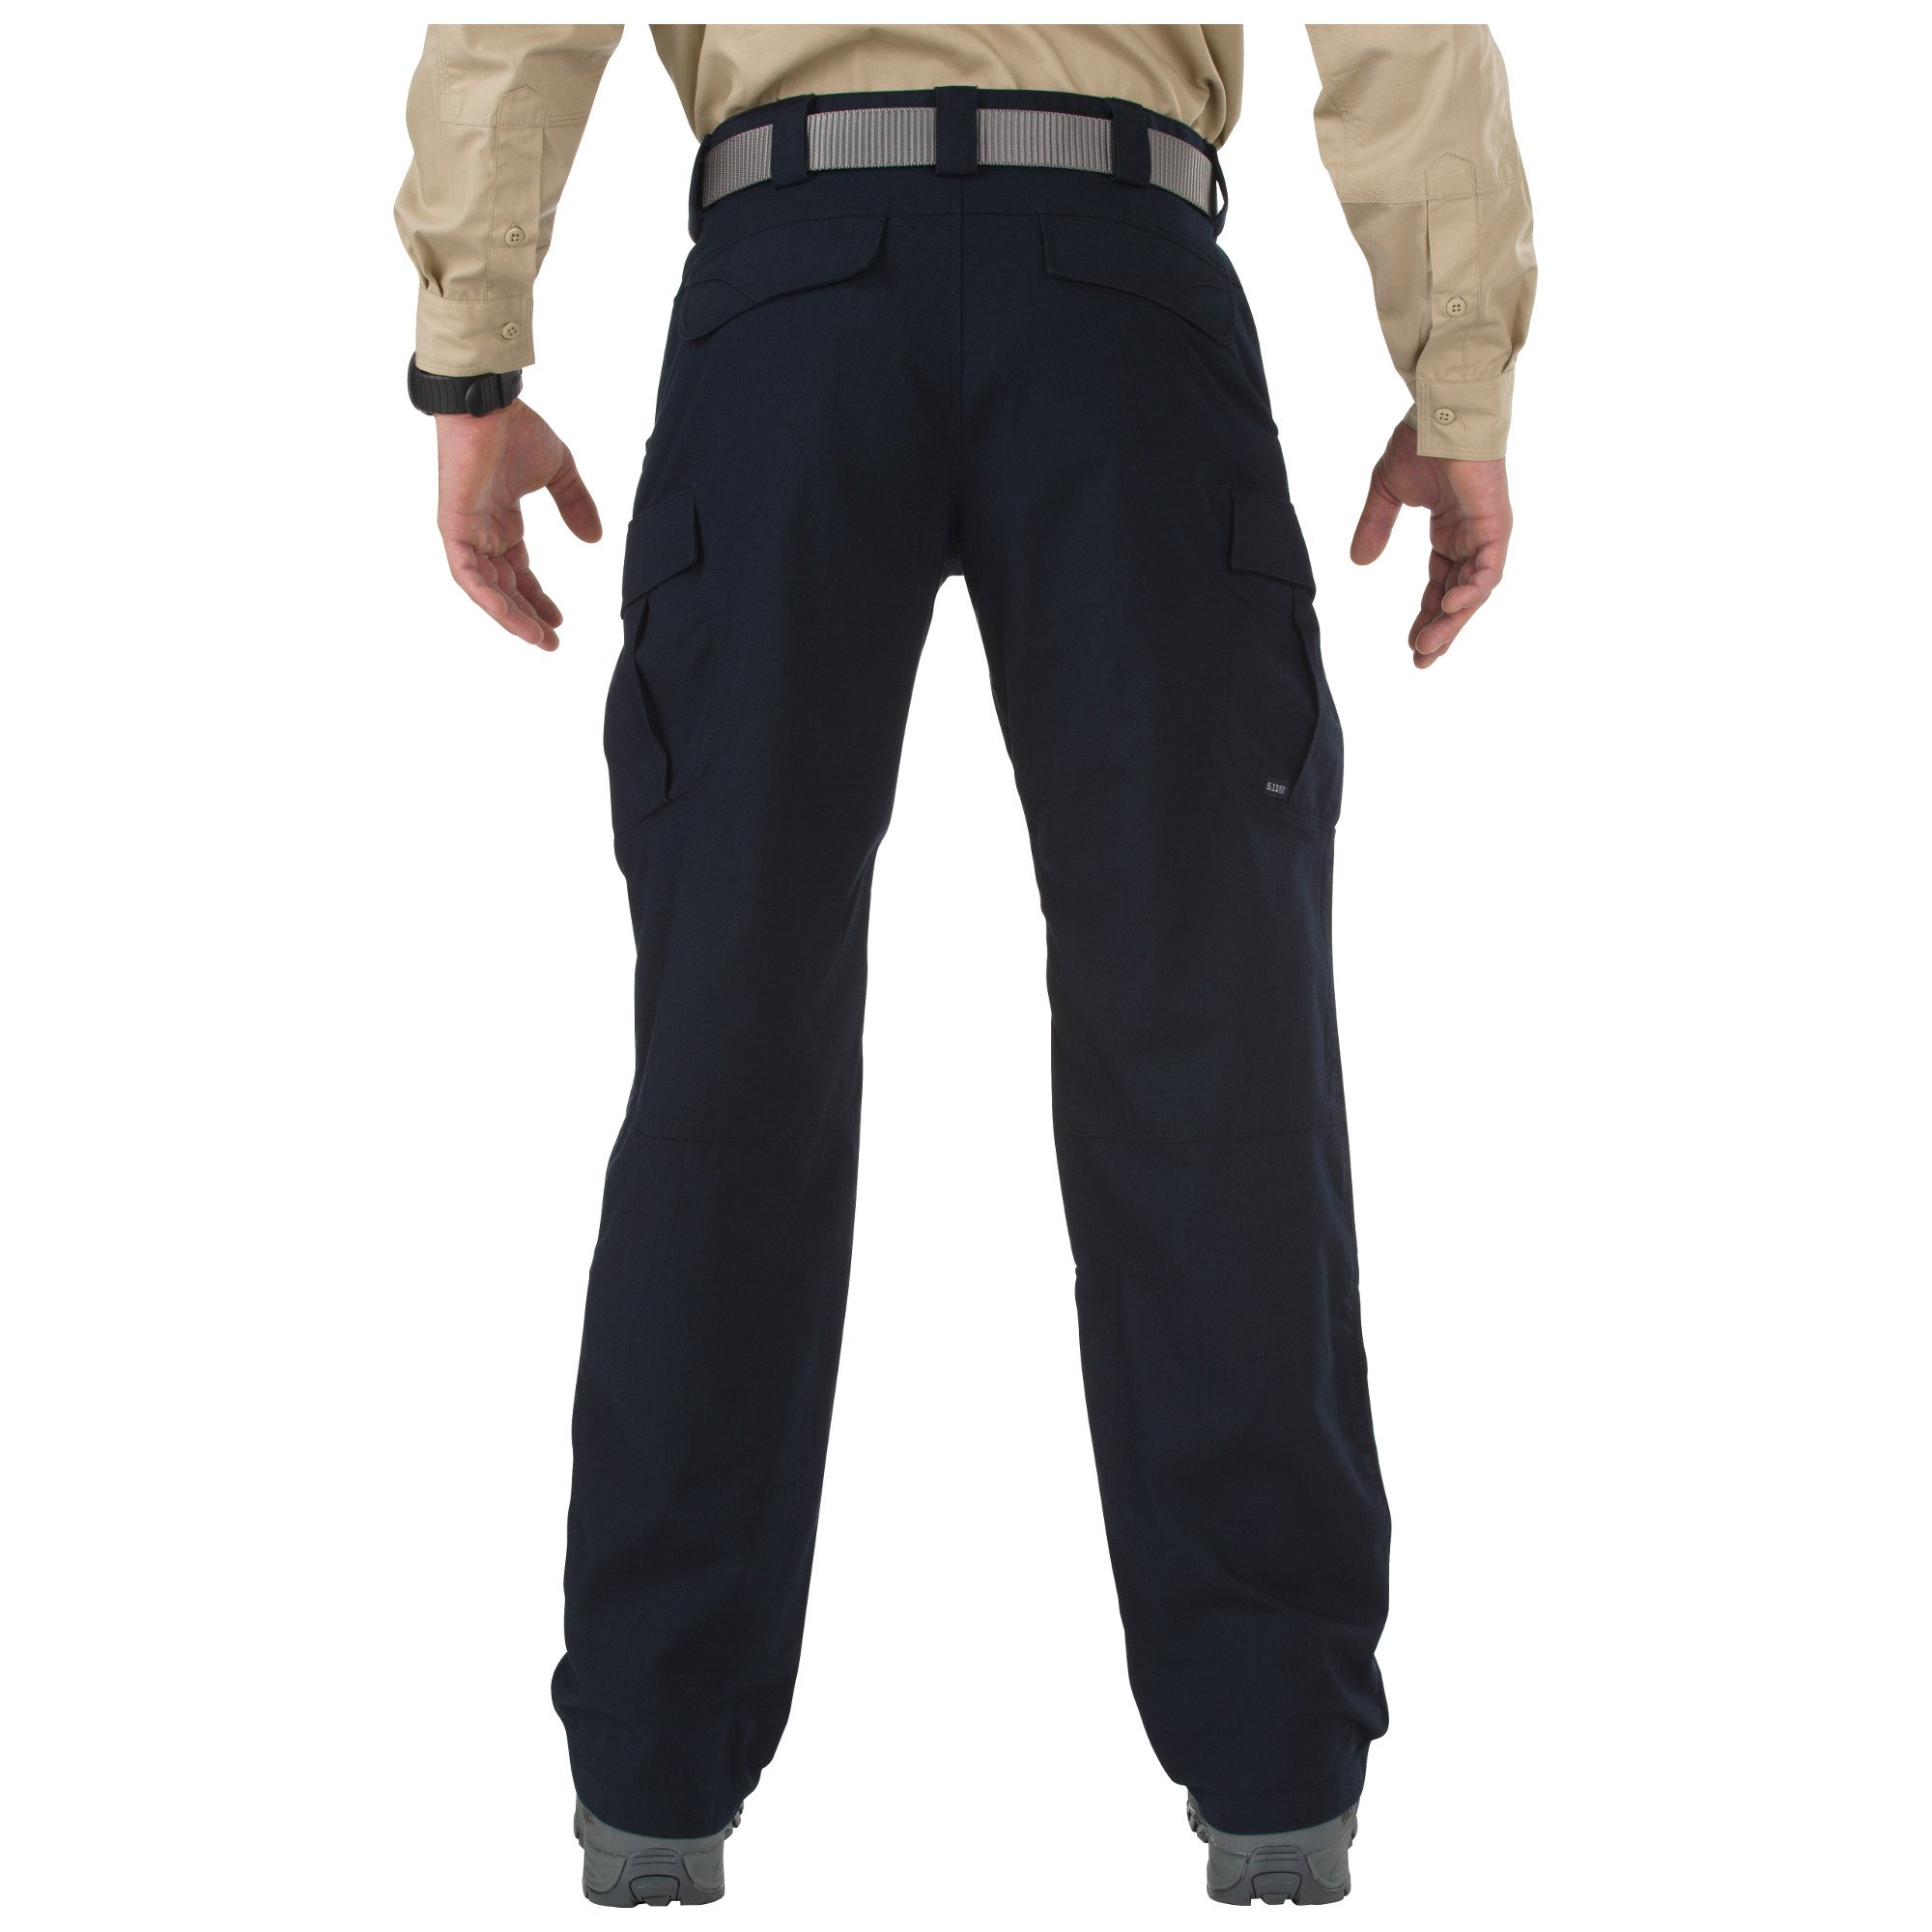 5.11 Tactical Stryke Pant, Dark Navy, 28x34 by 5.11 (Image #3)